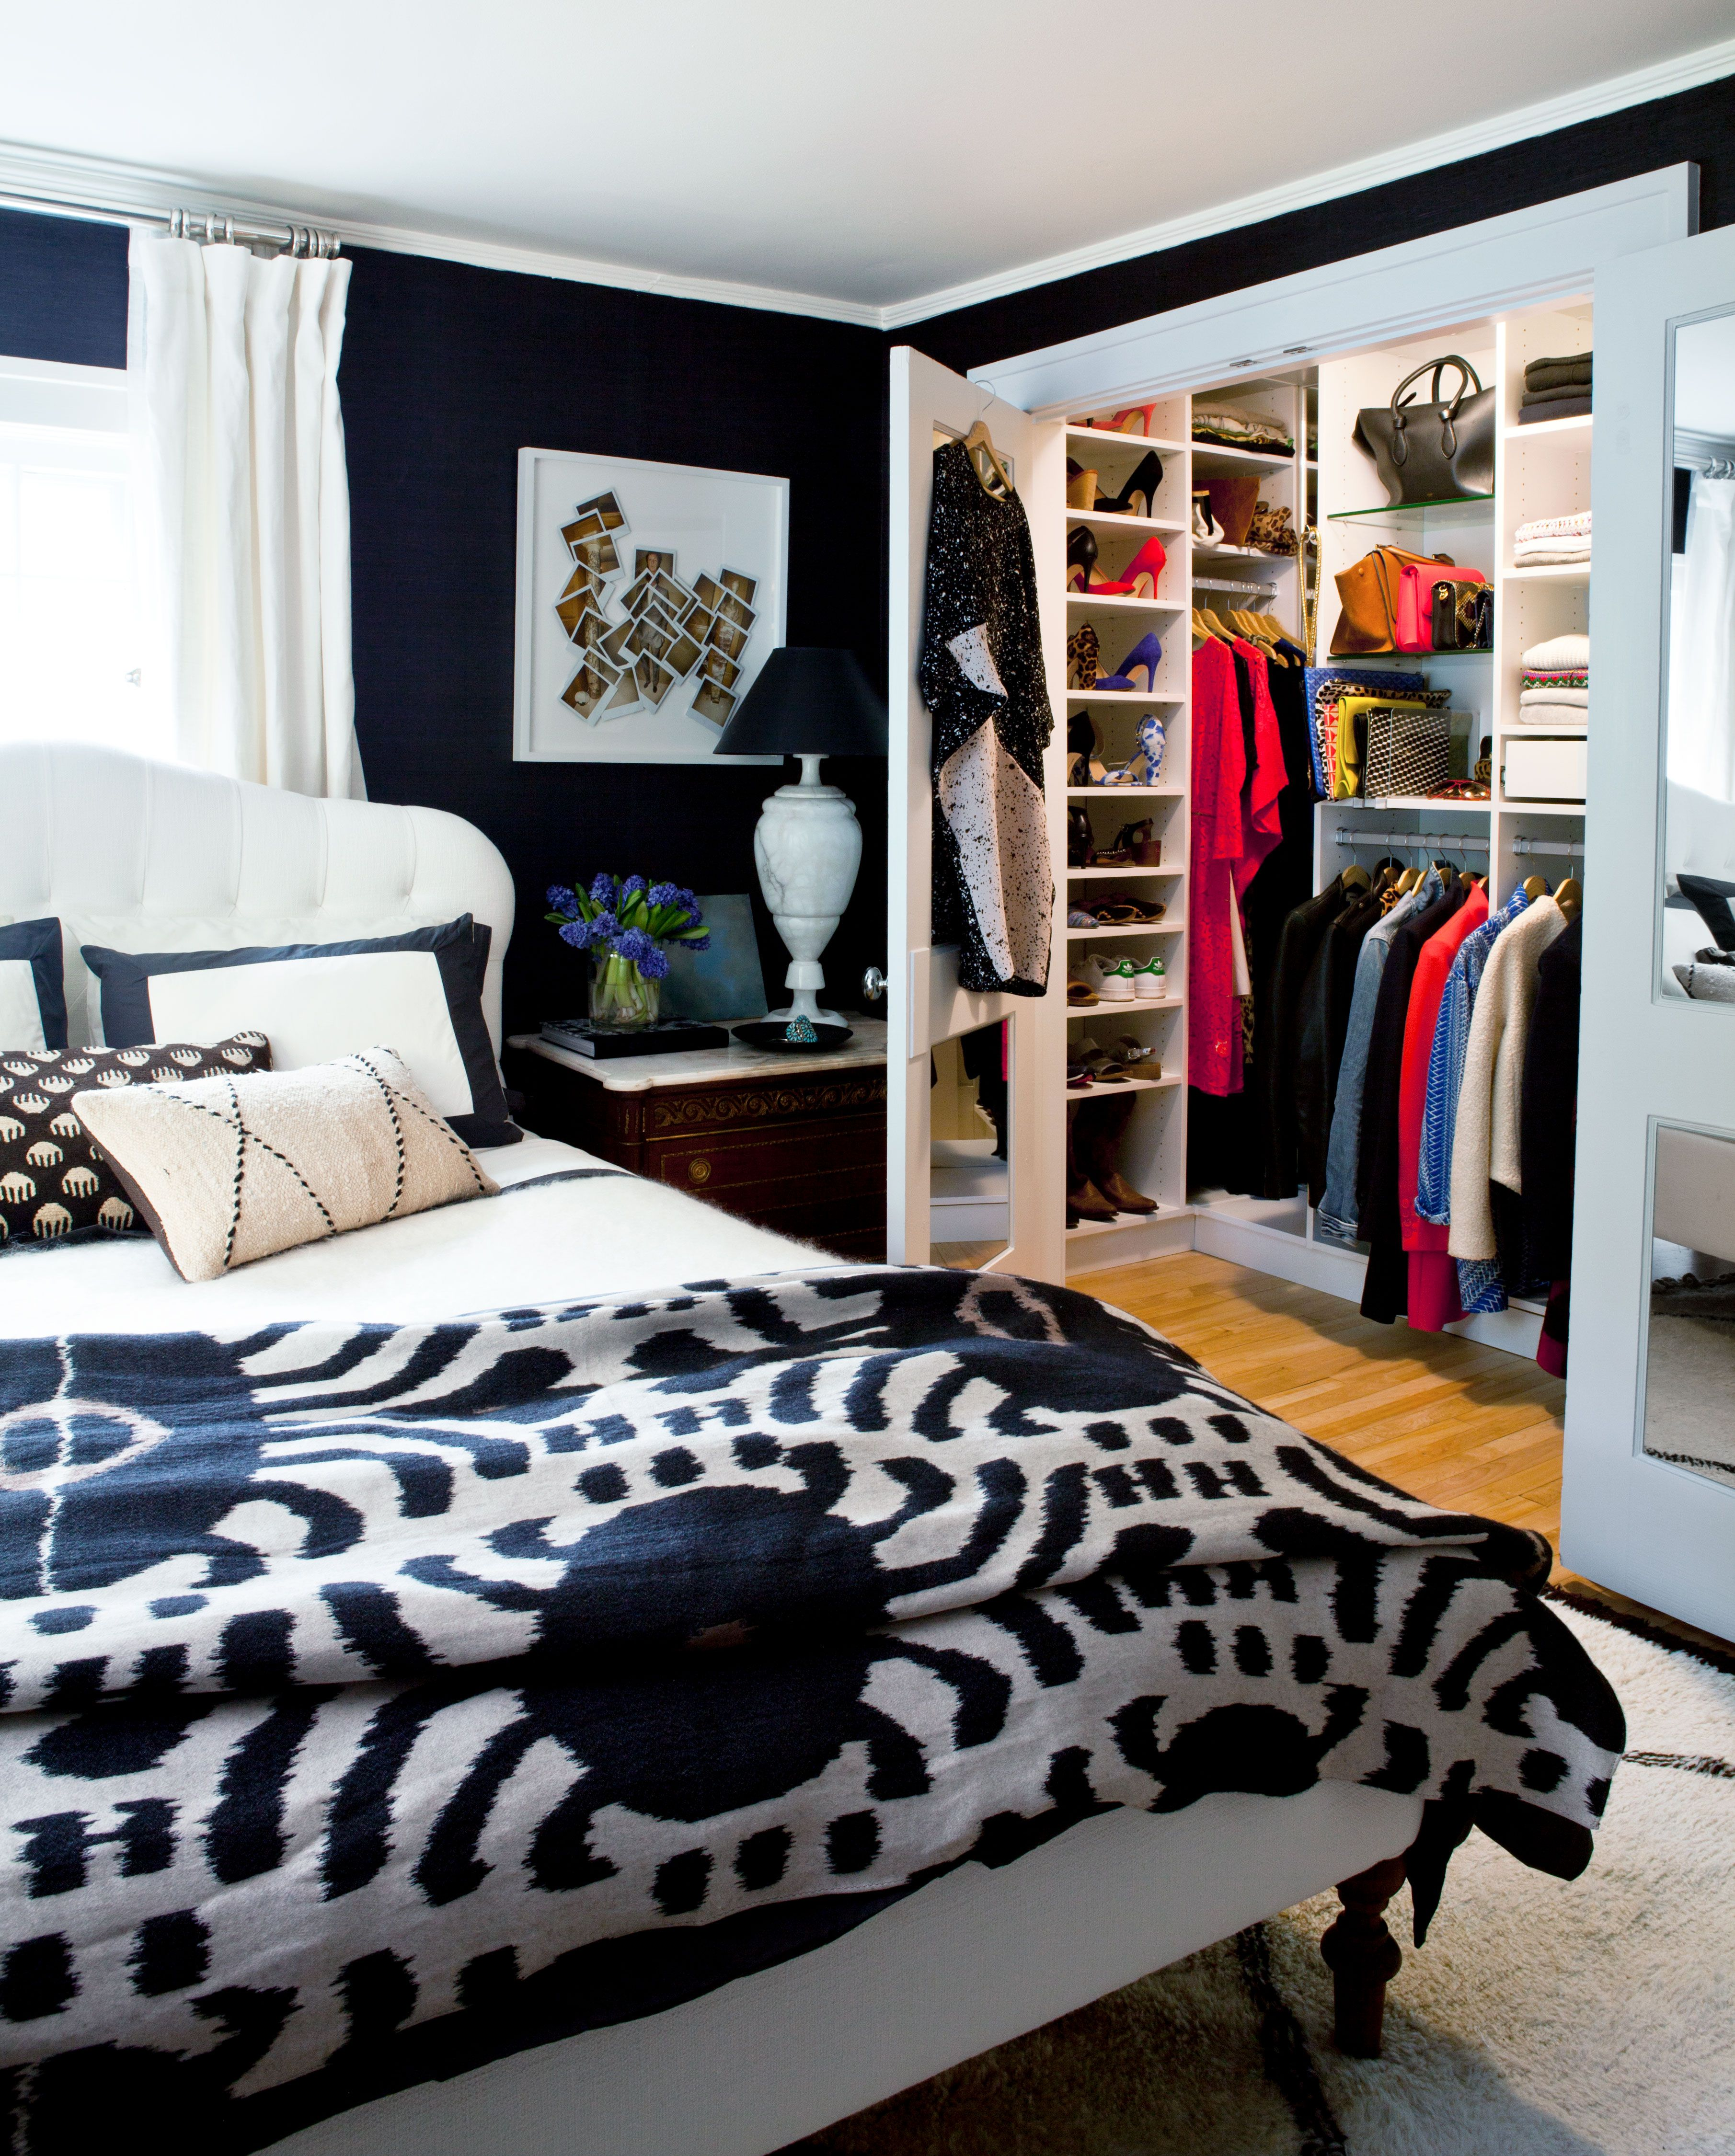 9 Stylish Black Bedroom Ideas - How to Decorate a Black Bedroom